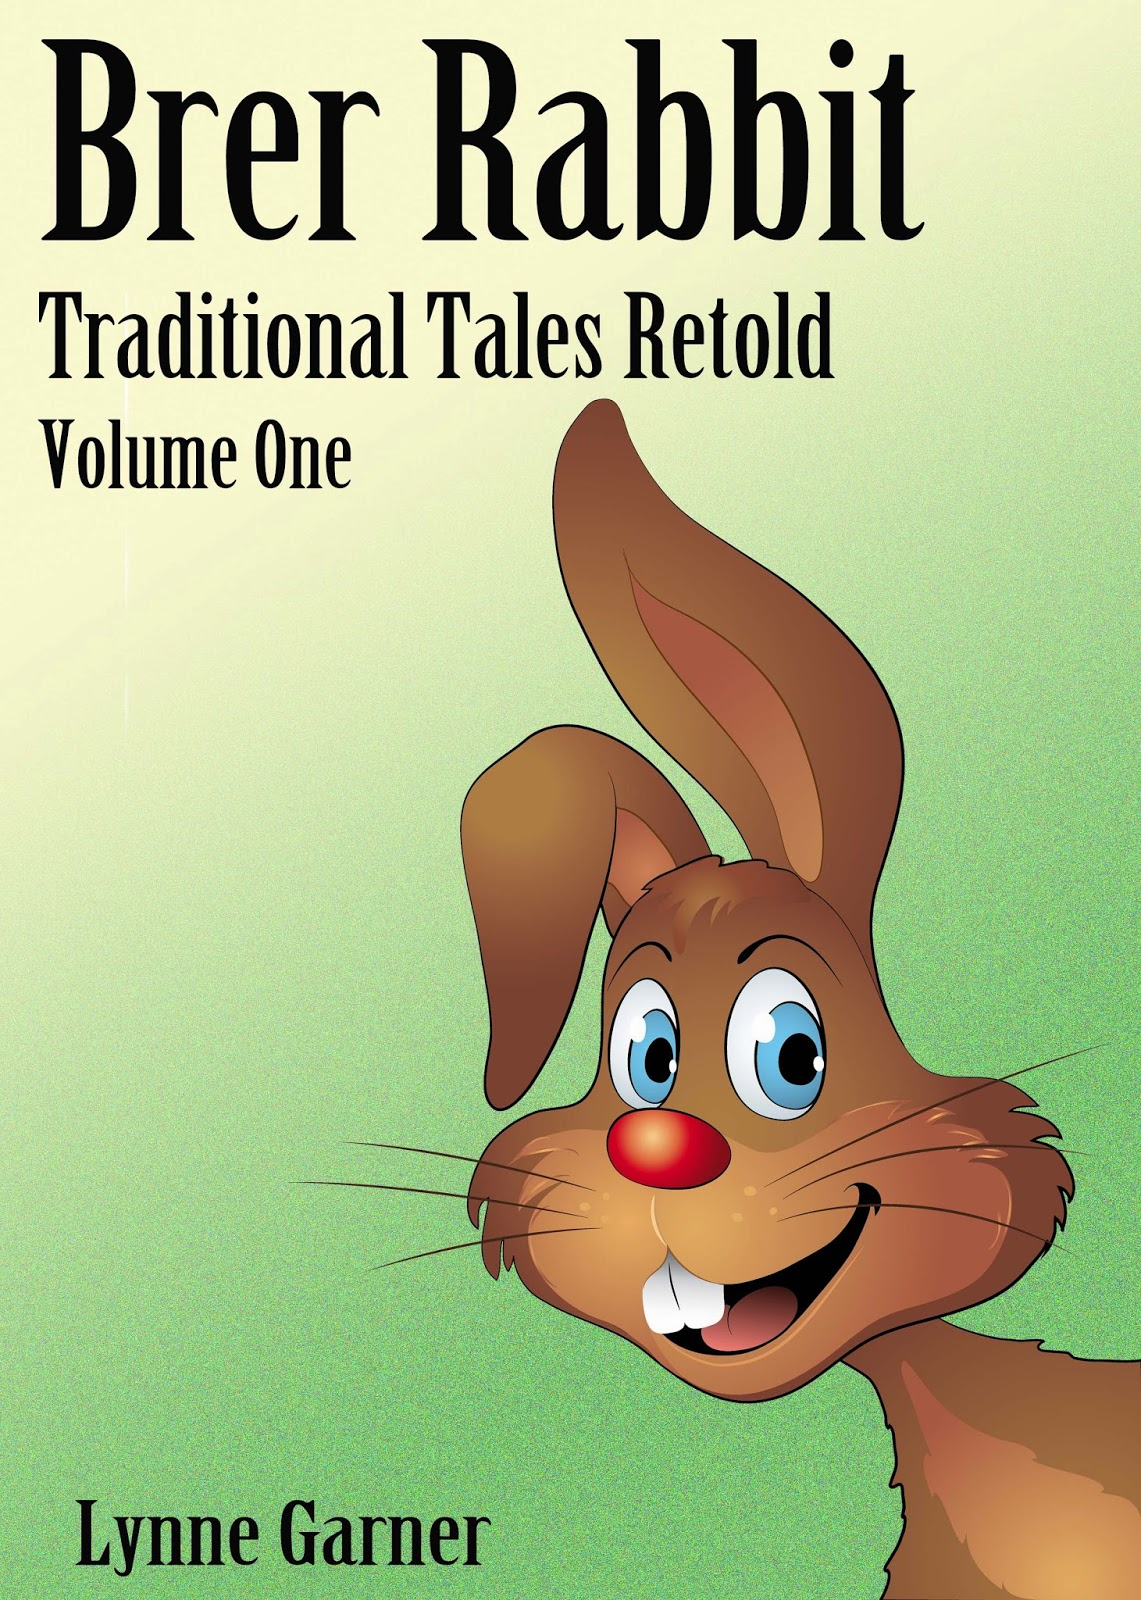 Brer Rabbit - Traditional Tales Retold